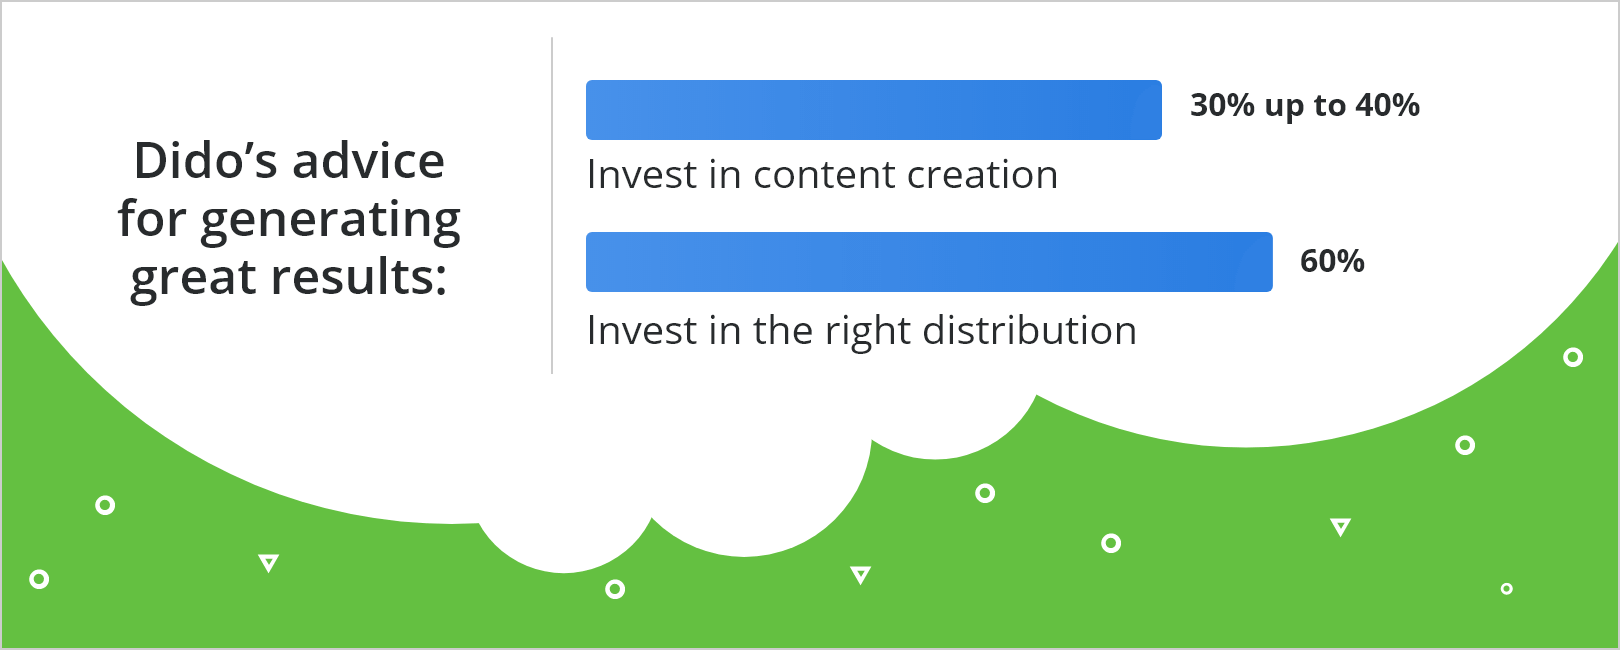 How to Generate Great Results with Content Strategy Budget for Distribution and Creation